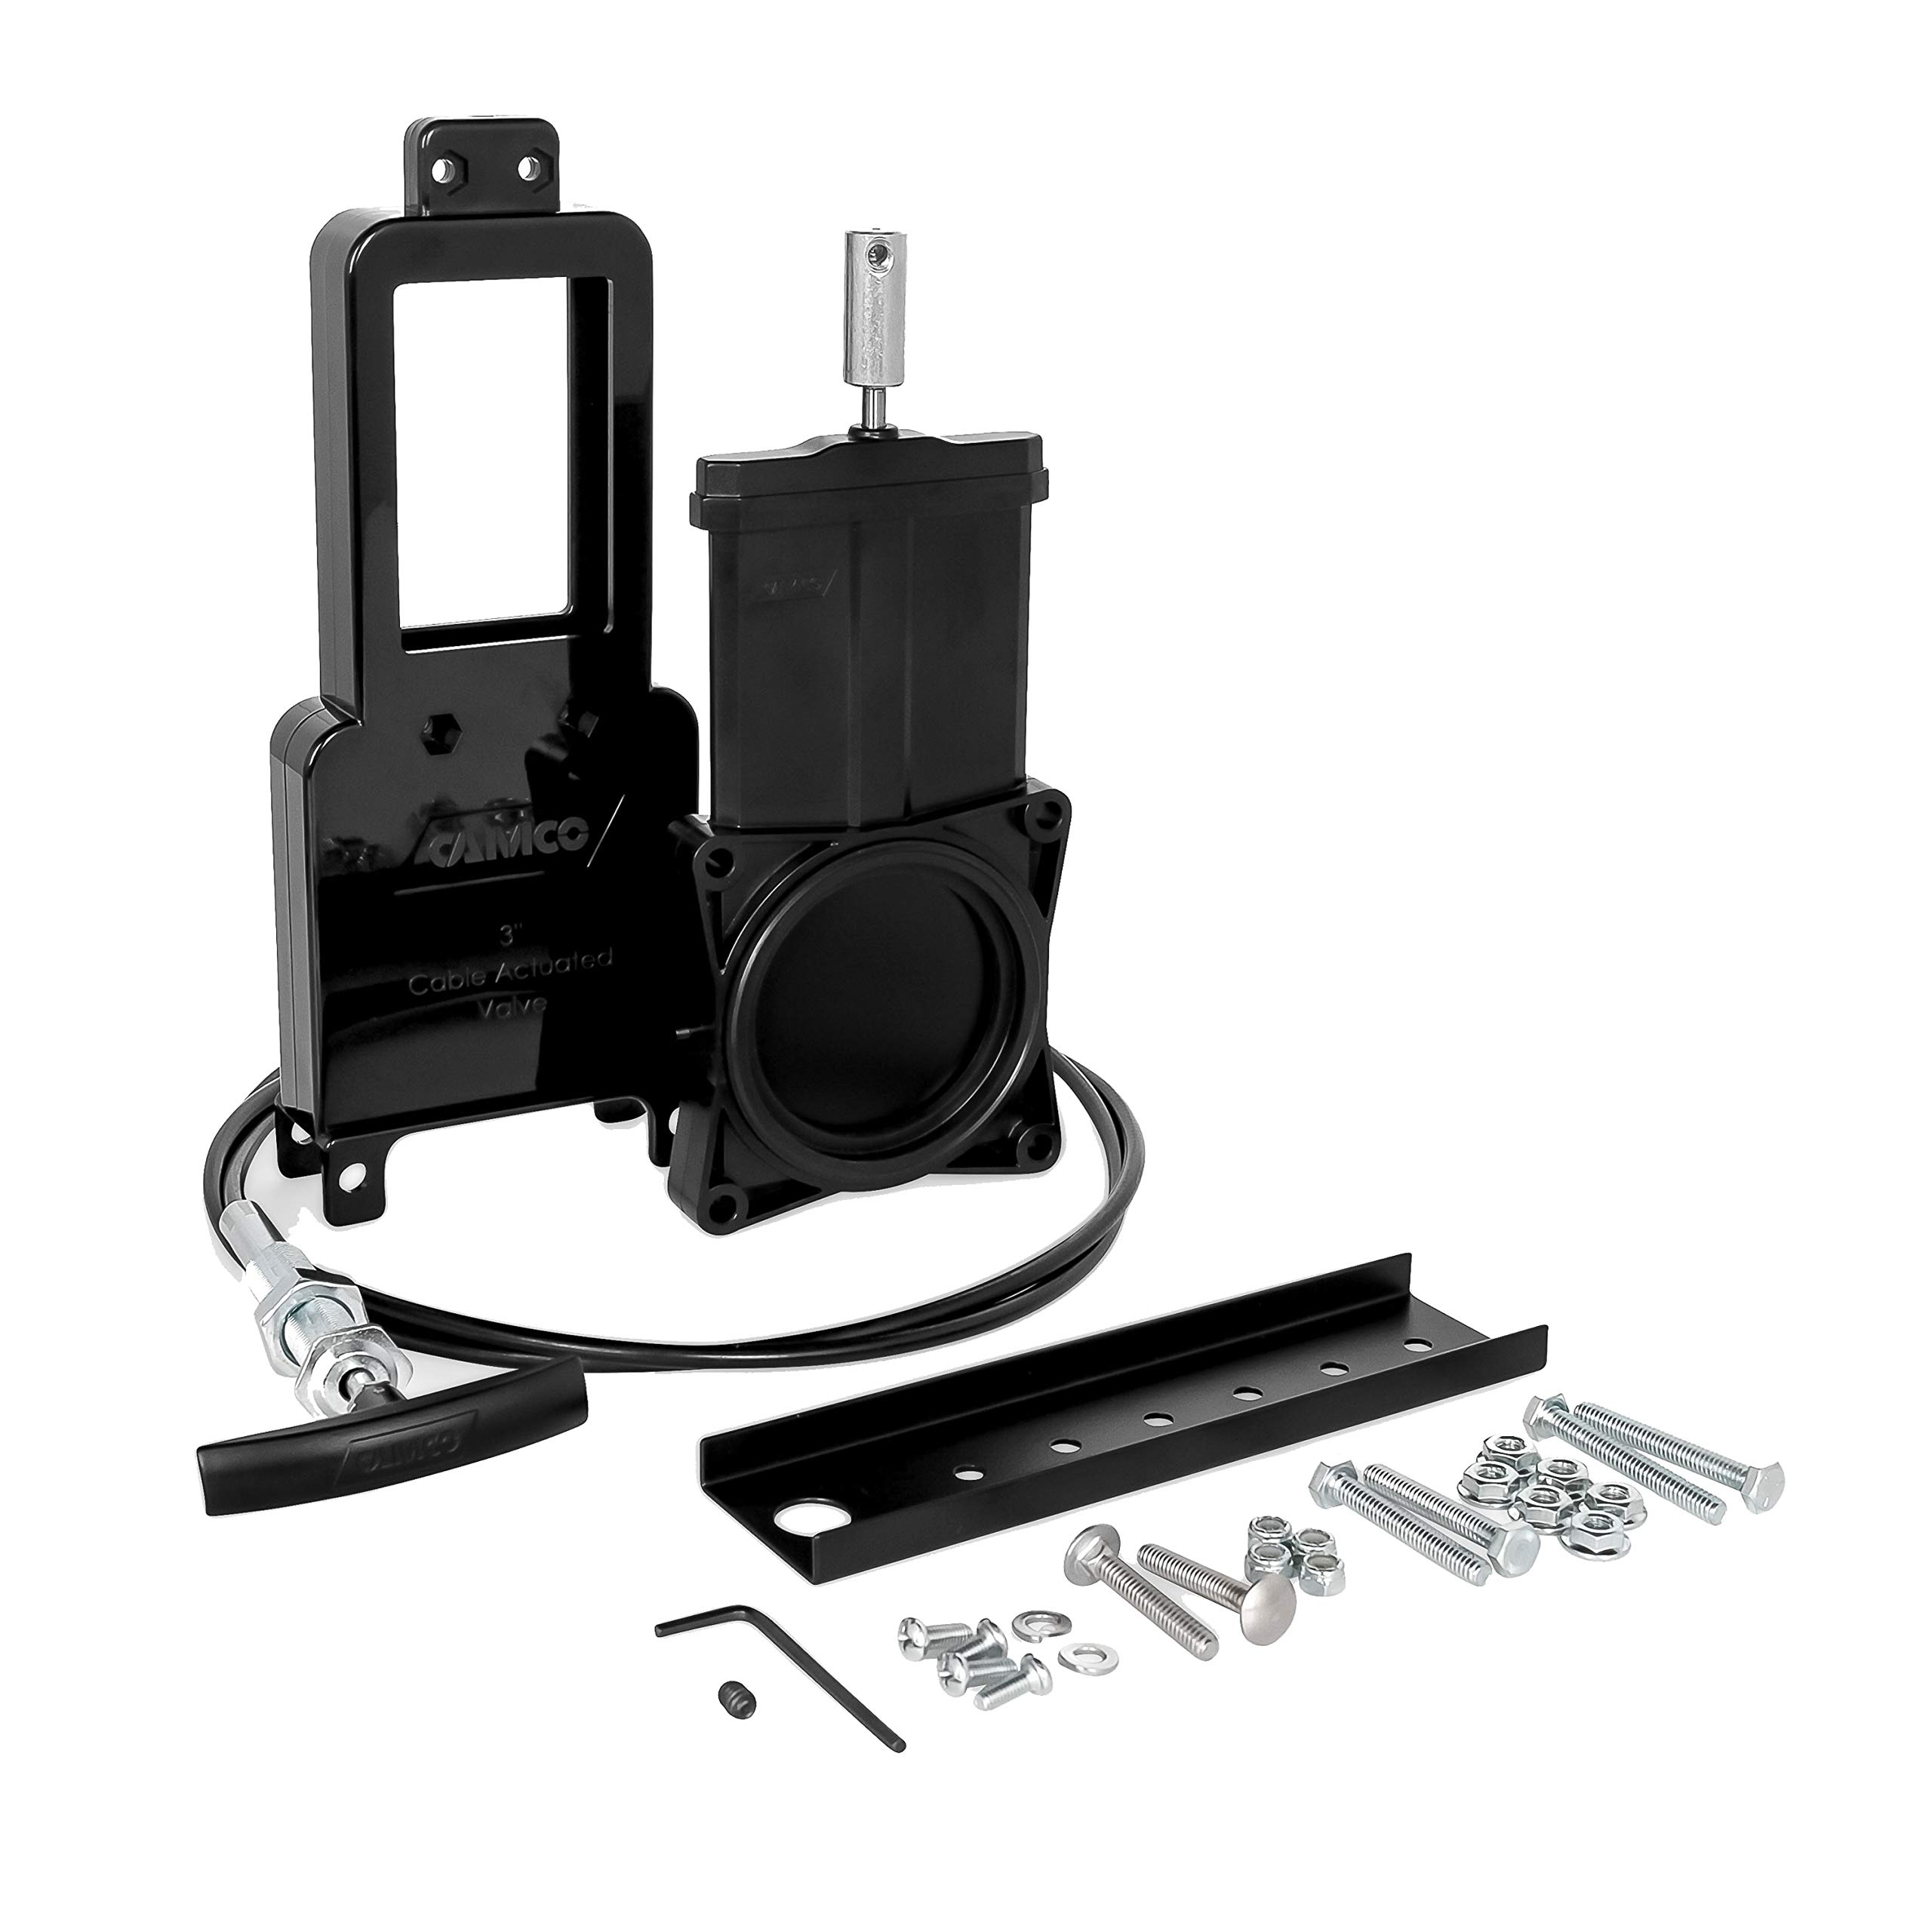 Camco Waste Valve Kit for RV Sewer Systems - Includes 3'' Sewer Valve with Metal Handle and 72'' Extension Cord, Installation Hardware Included - (39519) by Camco